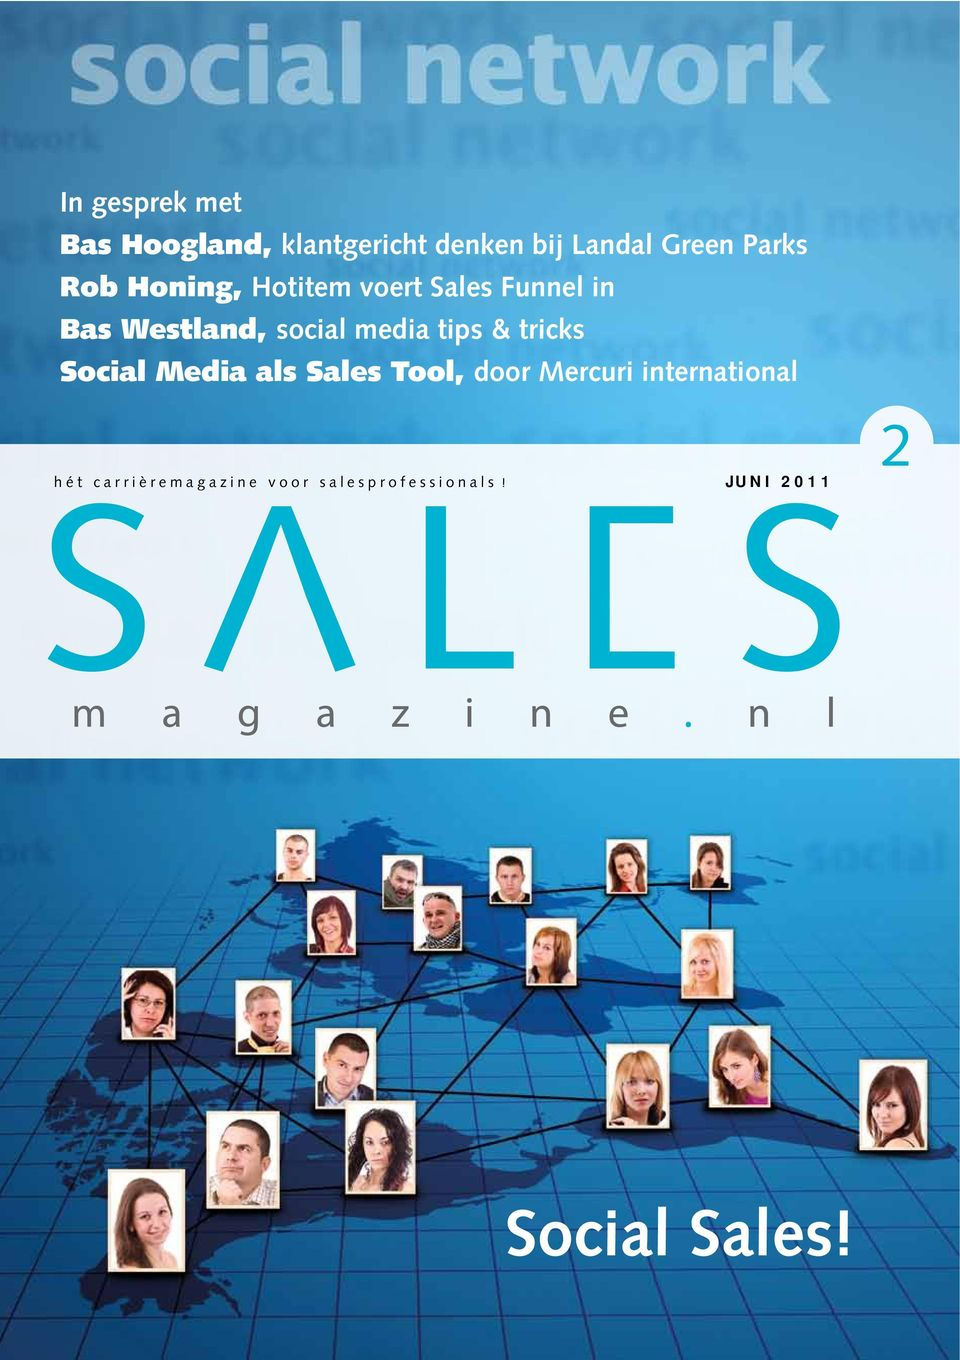 media tips & tricks Social Media als Sales Tool, door Mercuri